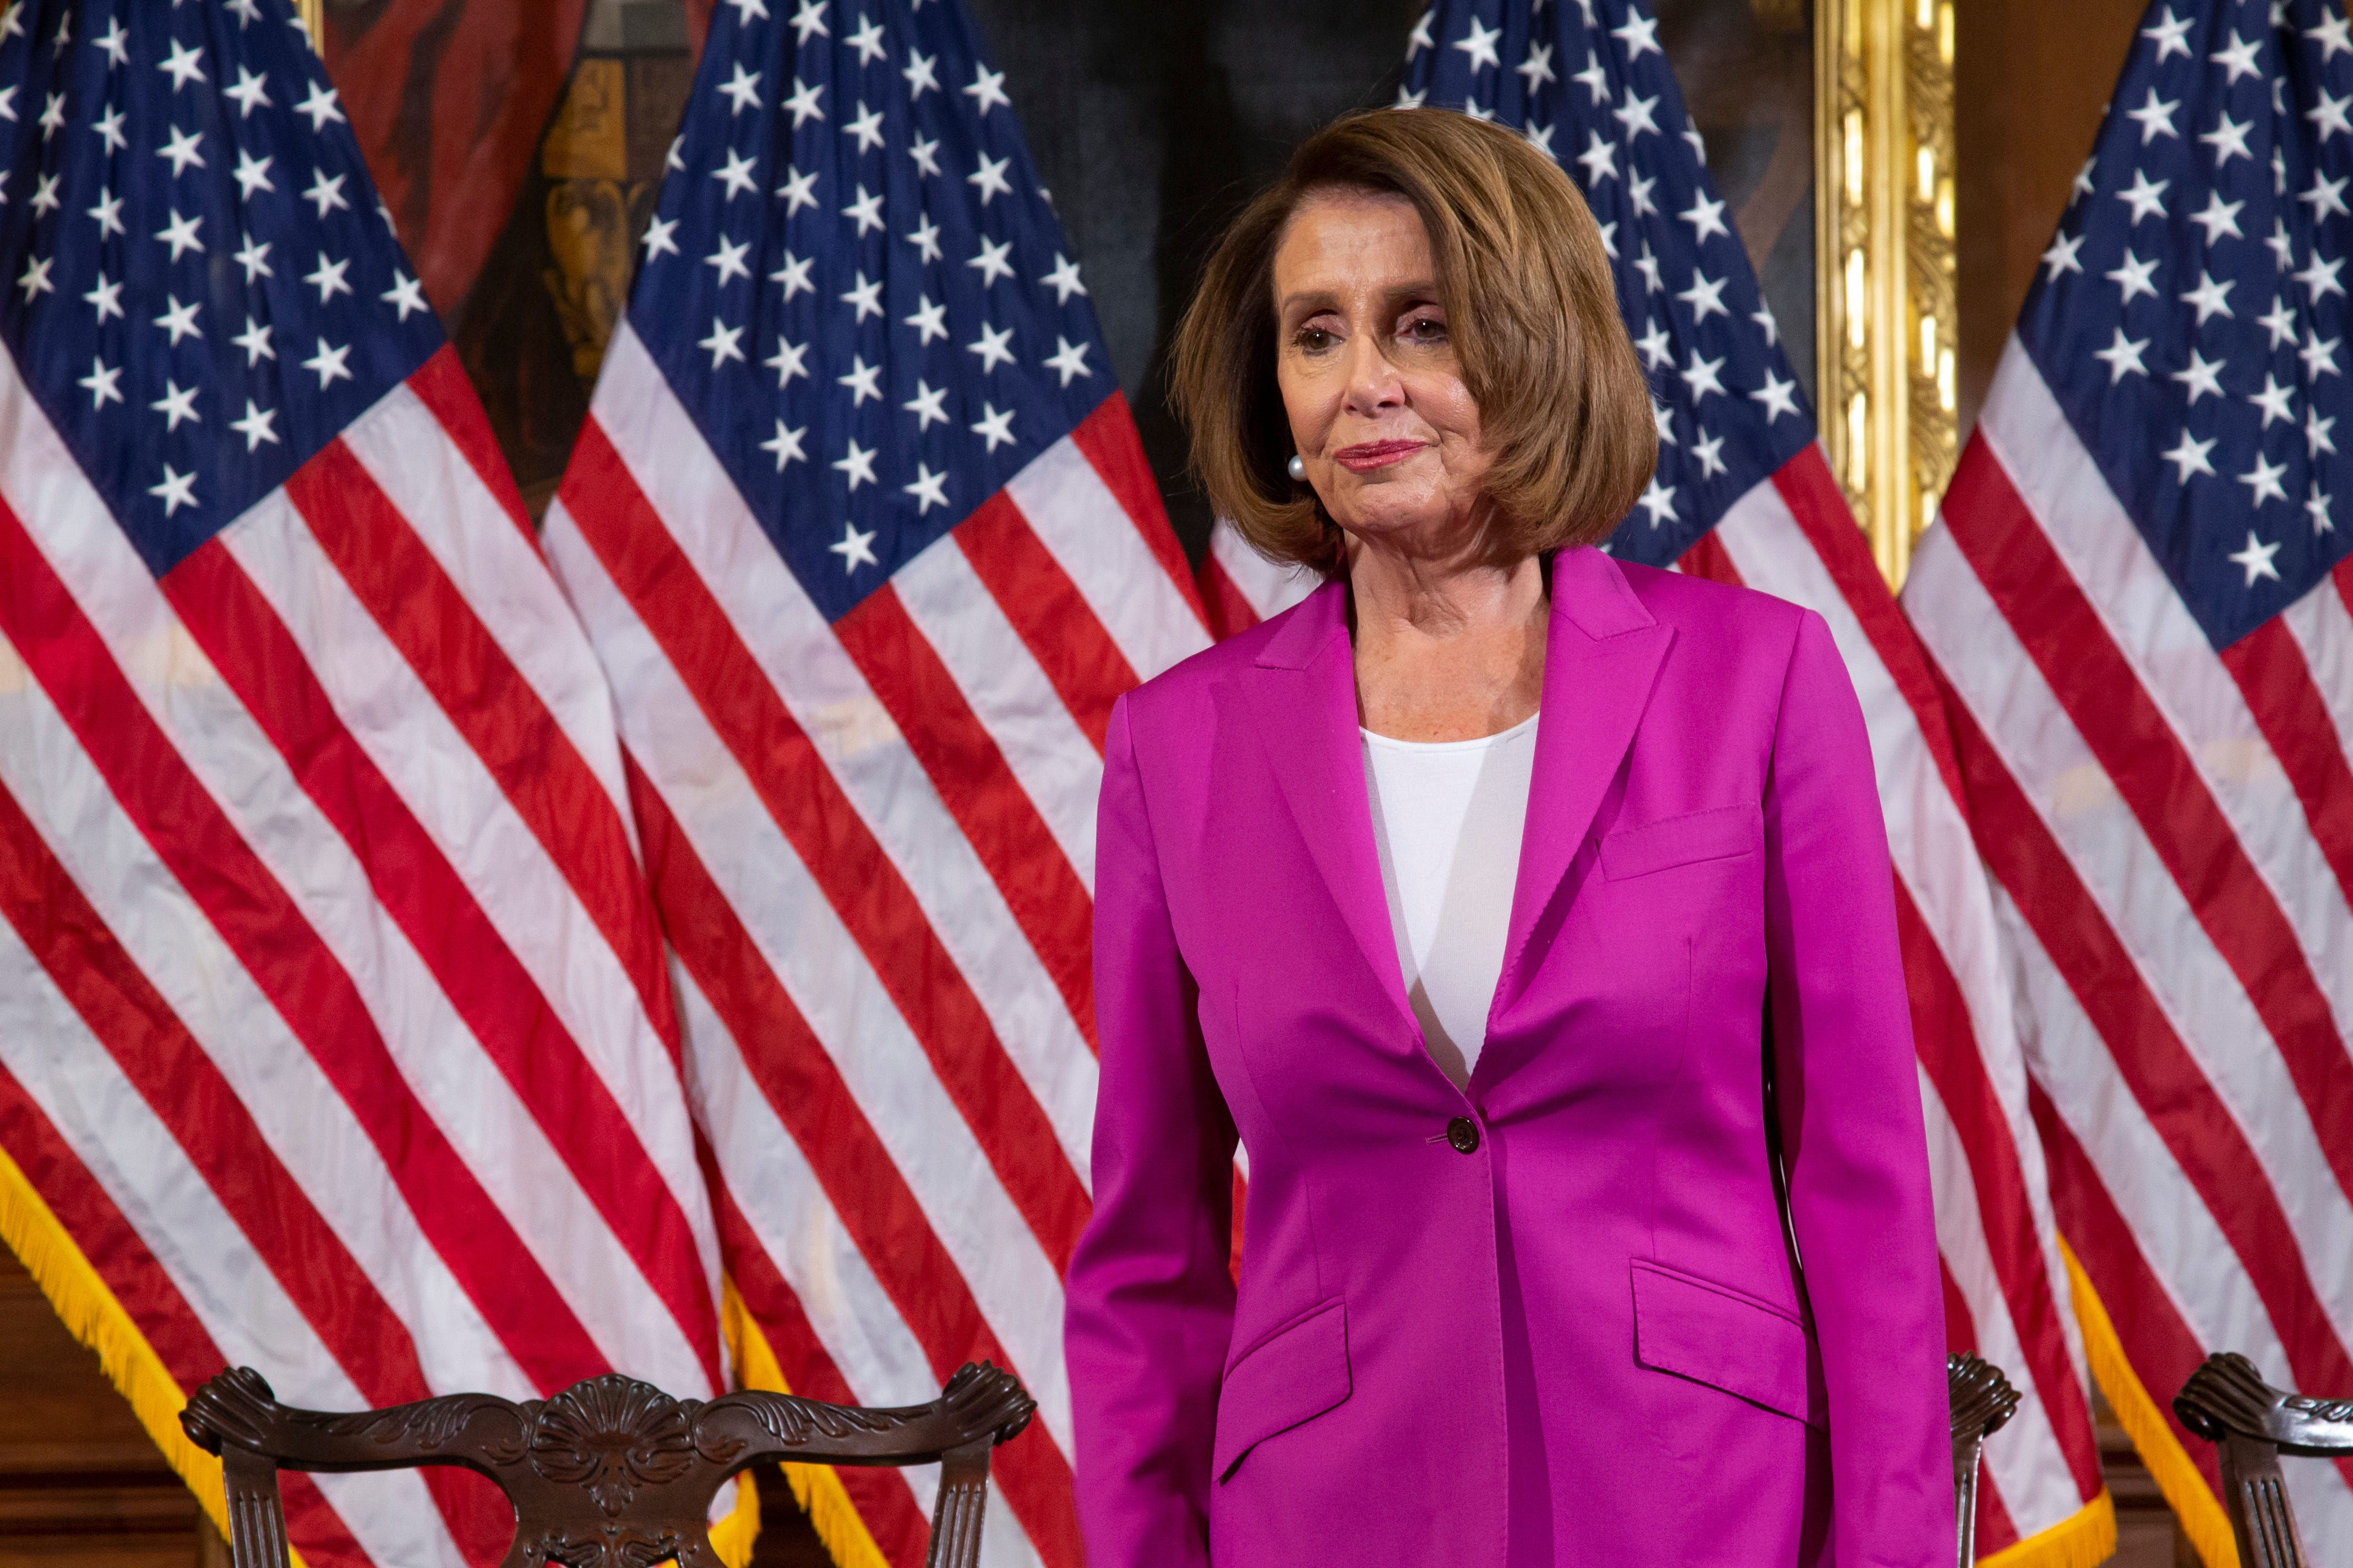 usatoday.com - Eliza Collins, USA TODAY - Citing government shutdown and 'security concerns,' Speaker Pelosi urges delay of State of the Union address